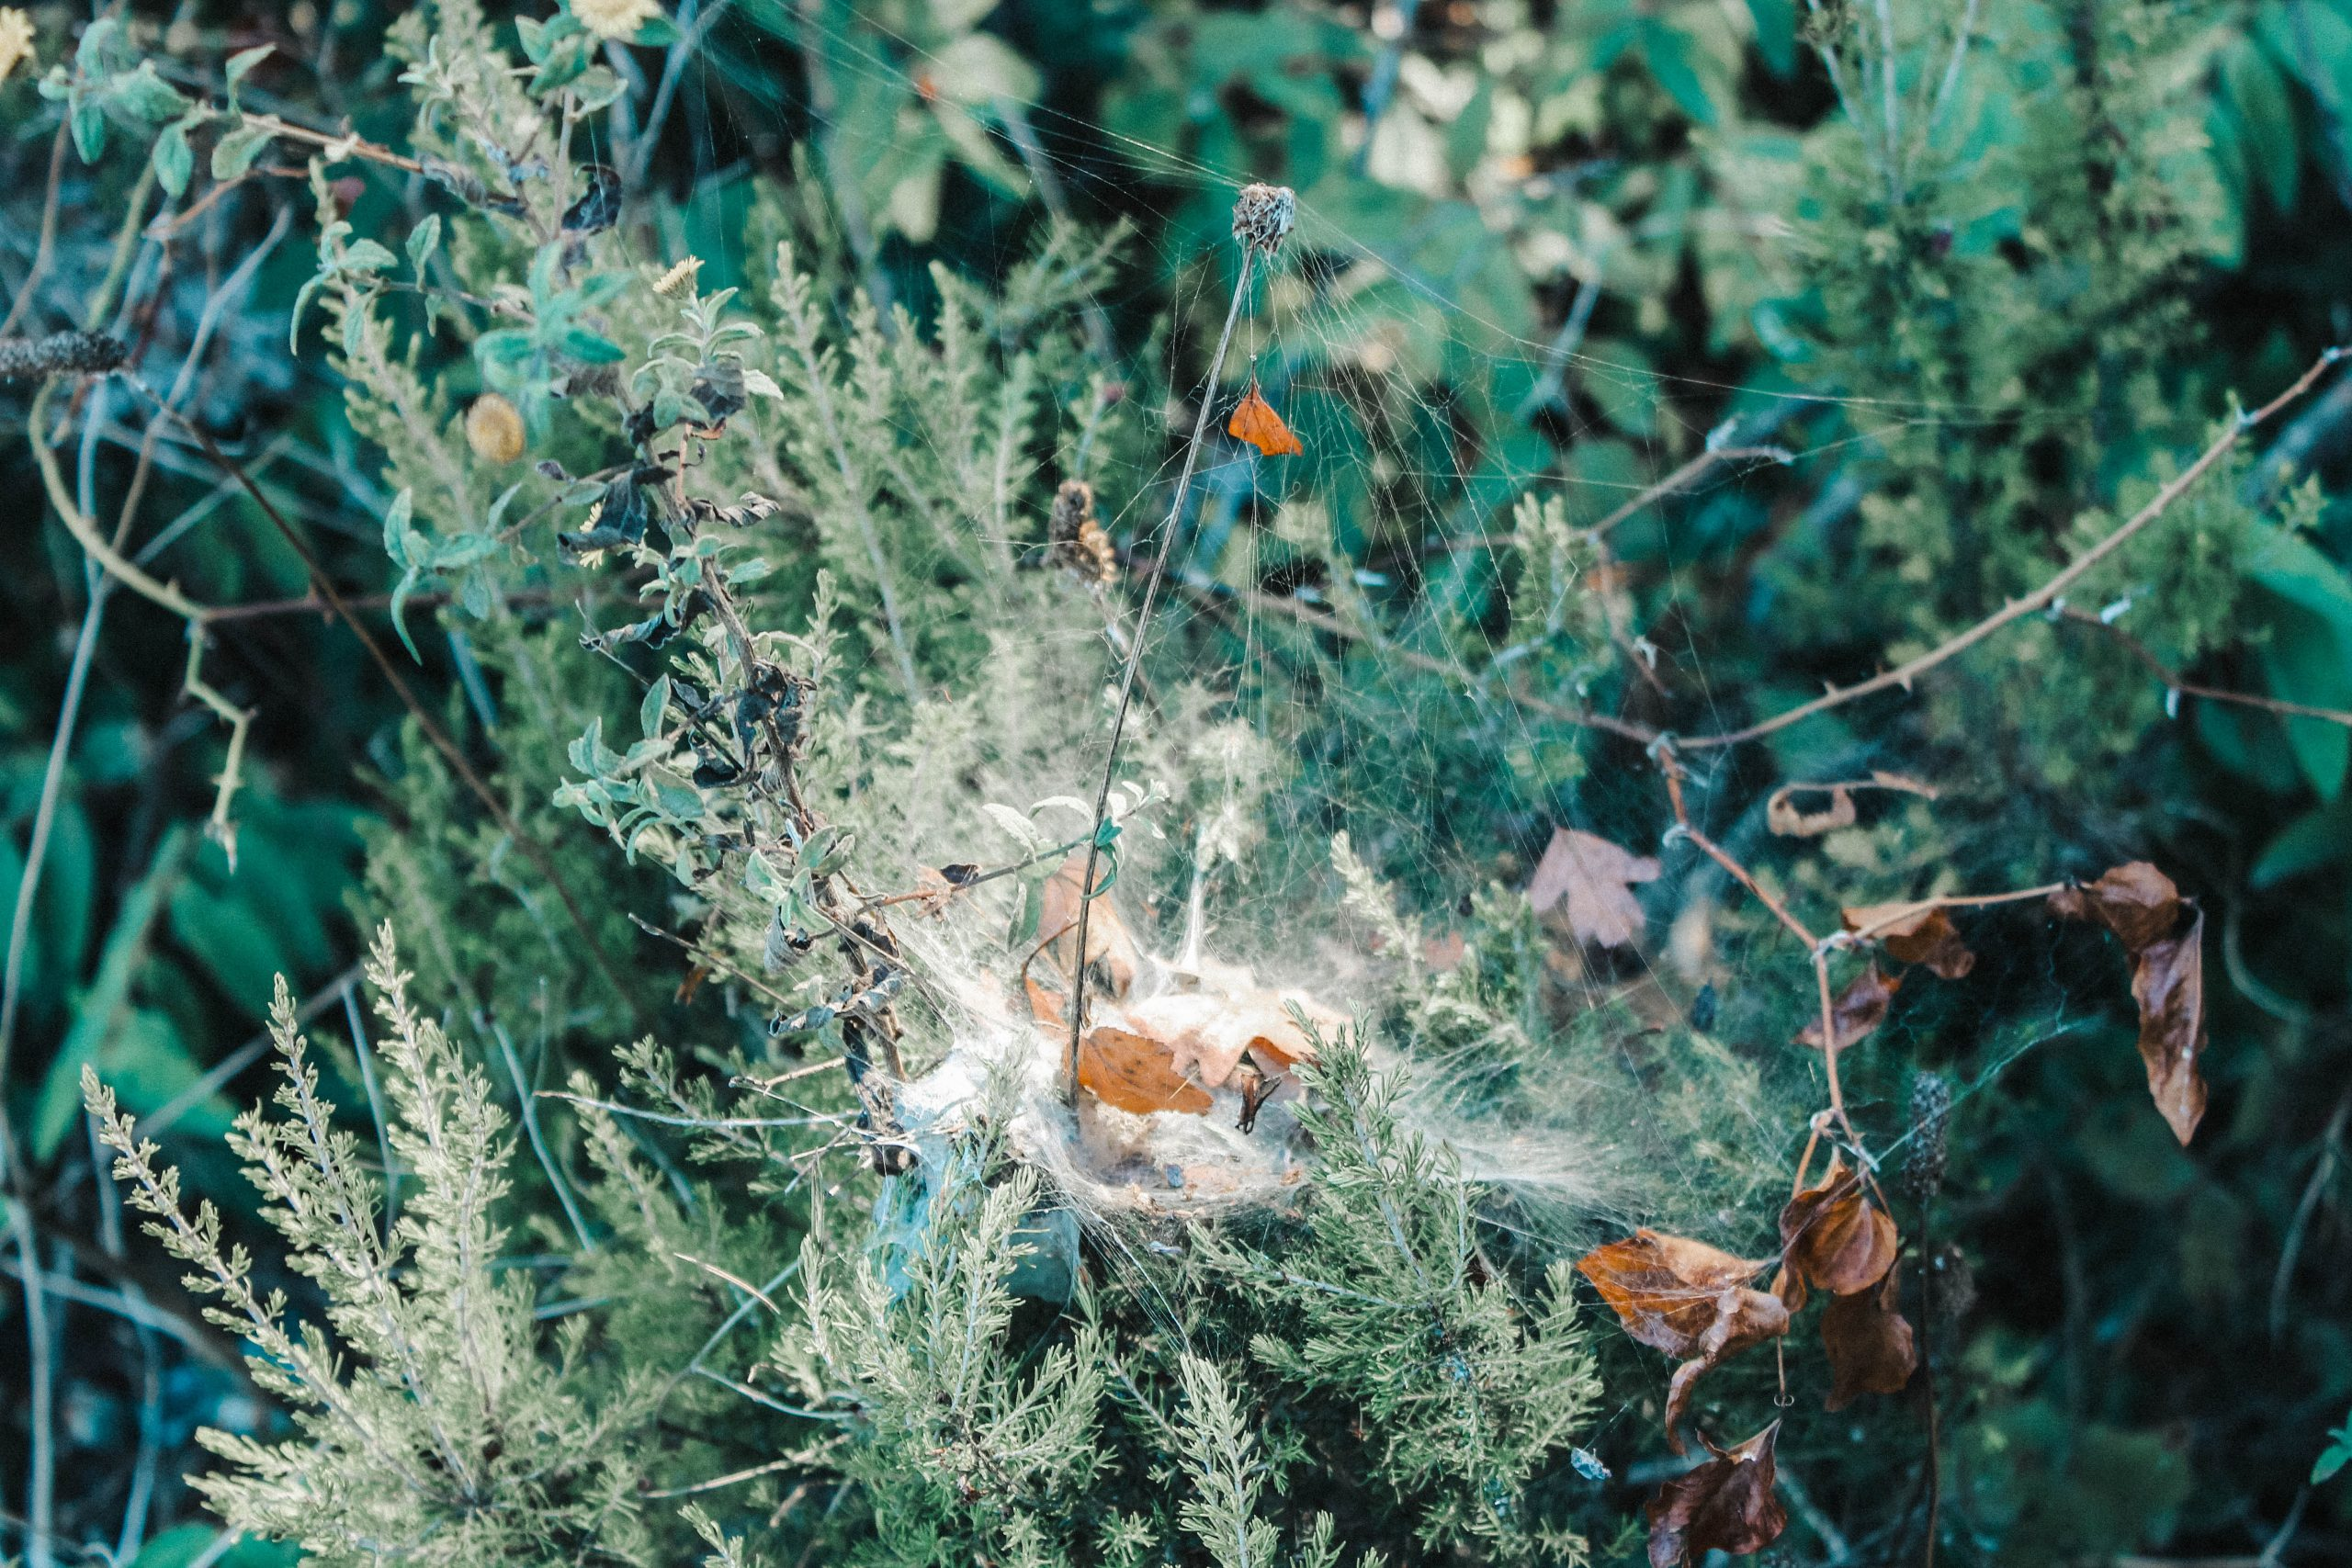 Spider web in the herbs